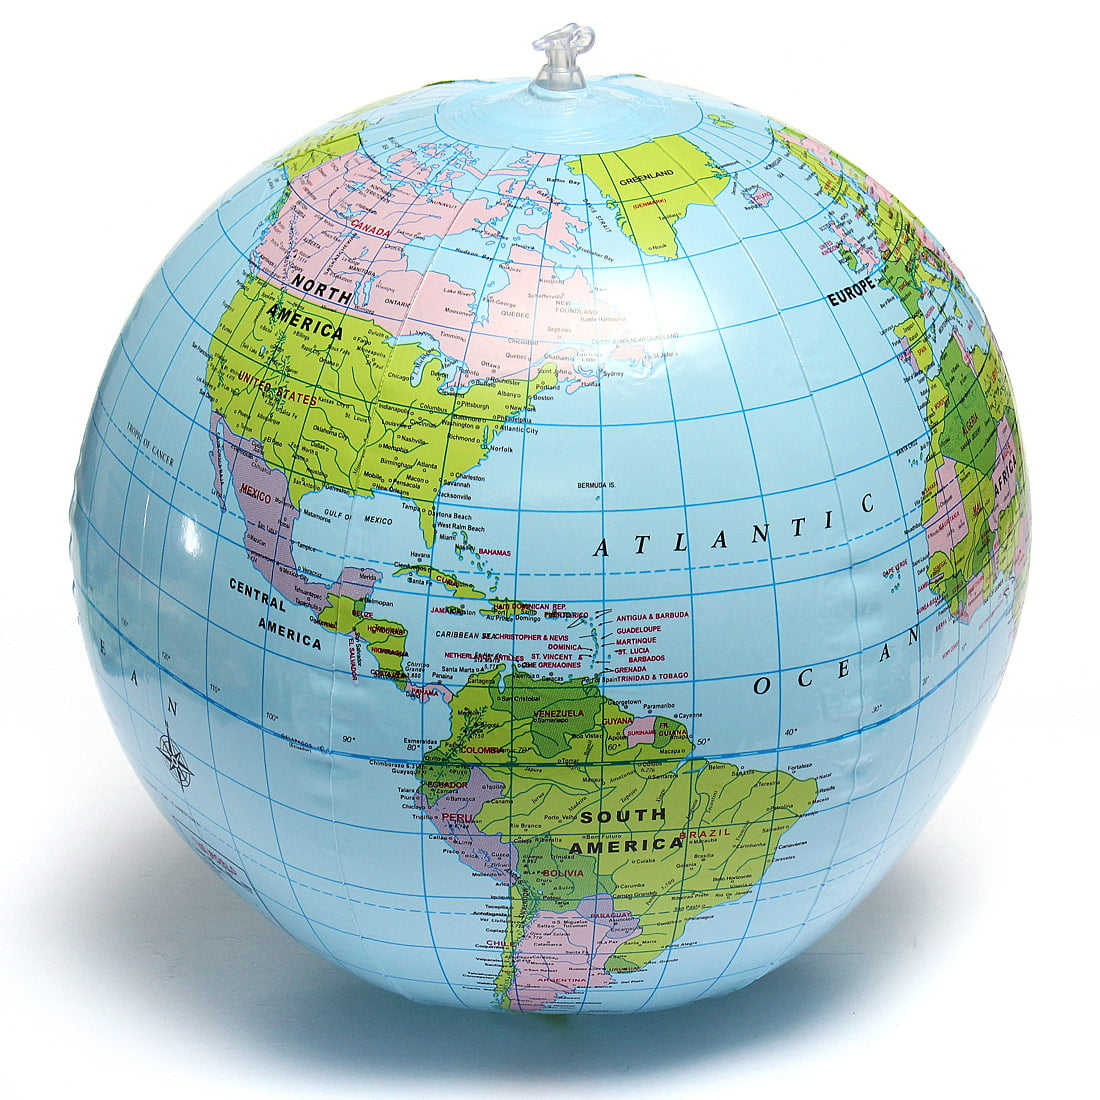 15inch Inflatable Countries Cities Earth World Globe Map Beach Ball on globe map philippines, globe map asia, globe map norway, globe map europe, globe map world, globe map states, globe map austria, globe map italy, globe map finland, globe map india, globe map art, globe map africa,